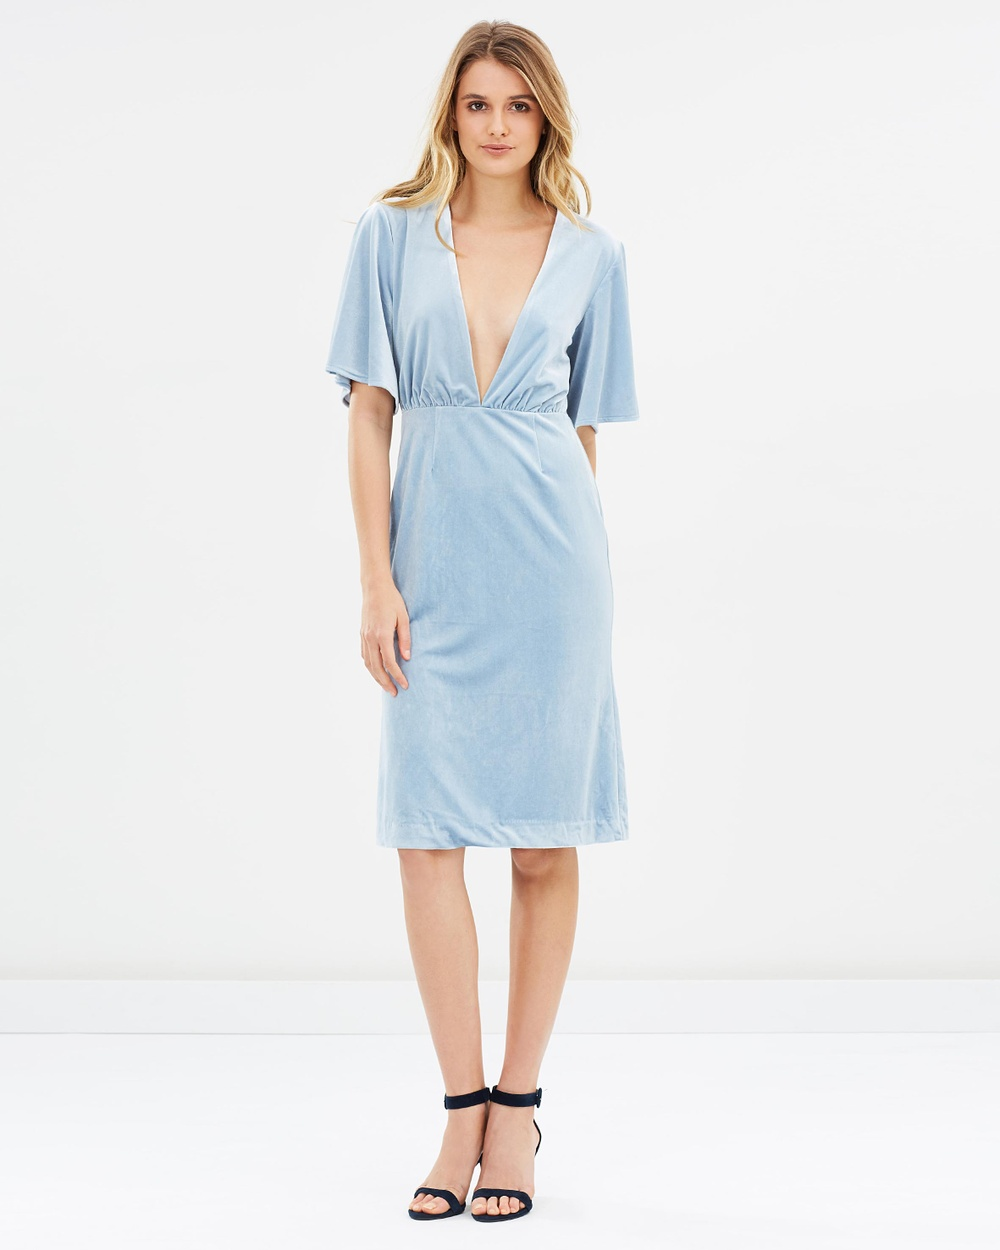 Isla Insurgency Dress Dresses Dust Blue Insurgency Dress